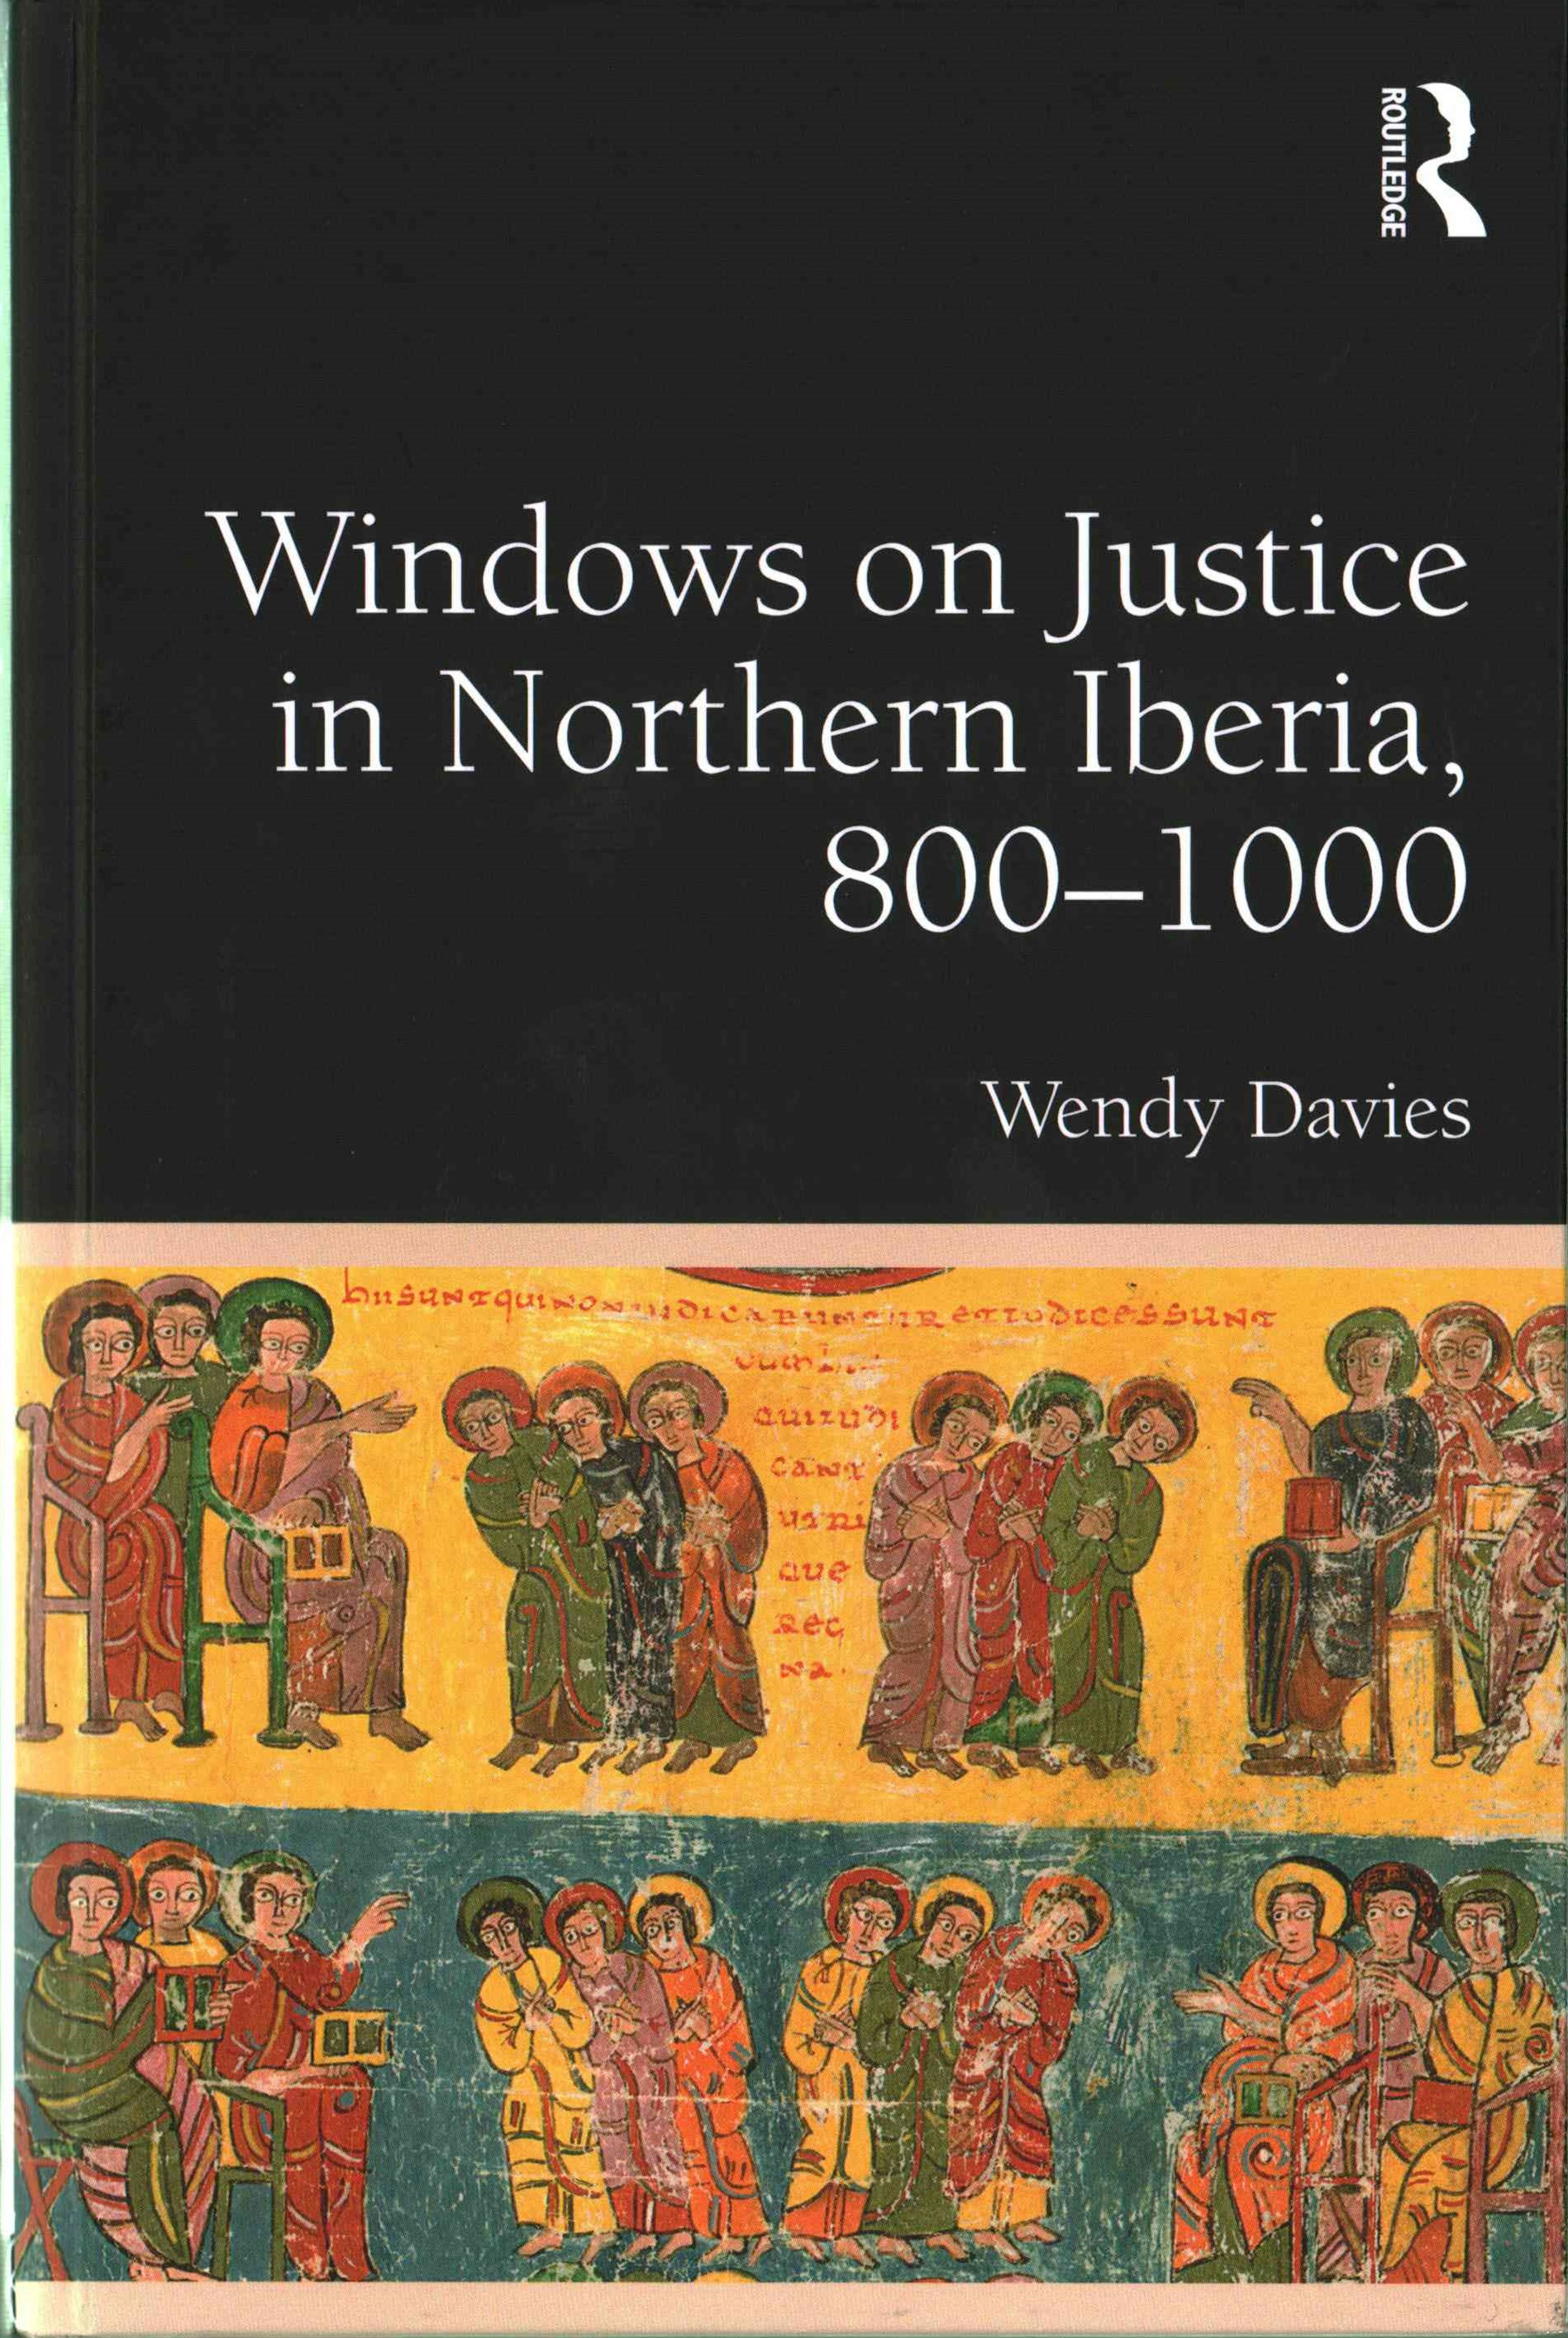 Windows on Justice in Northern Iberia, 800-1000